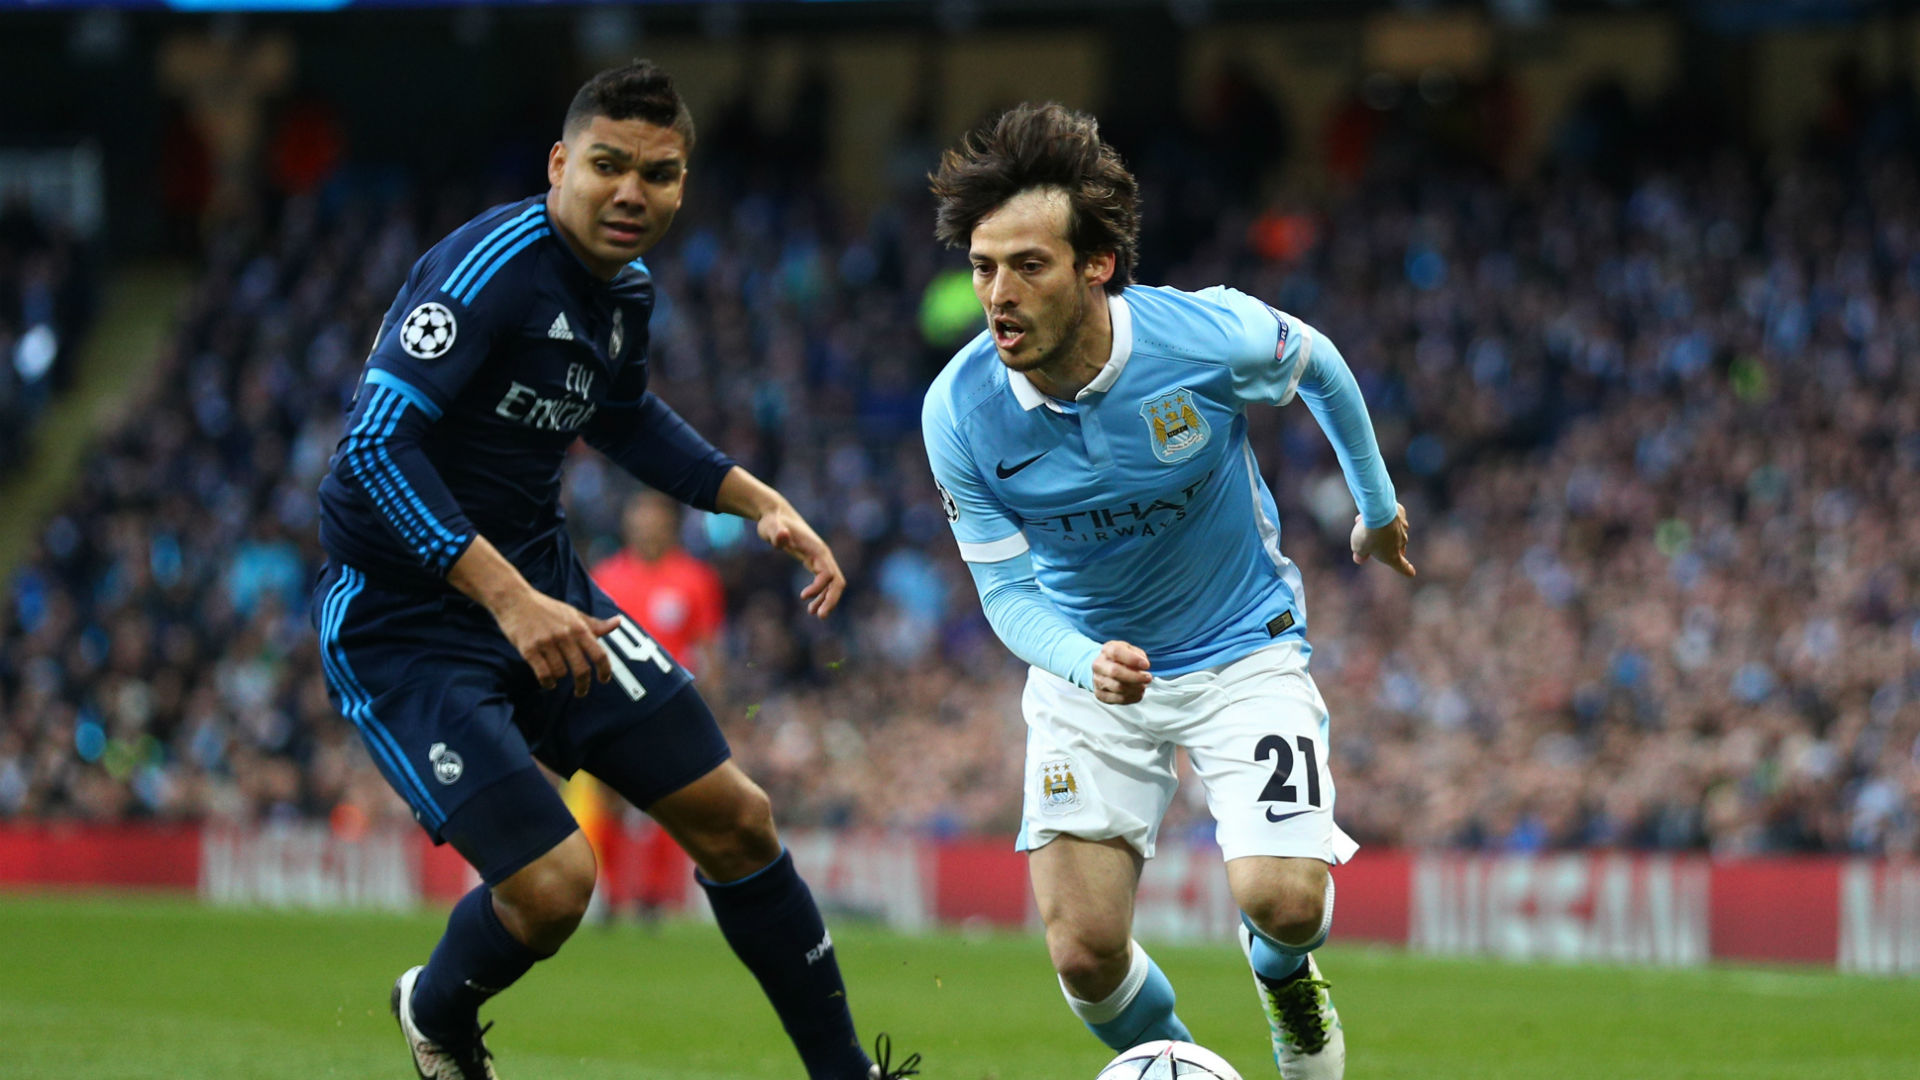 David Silva's legacy secure as he begins 'Last Dance' for Man City against Real Madrid